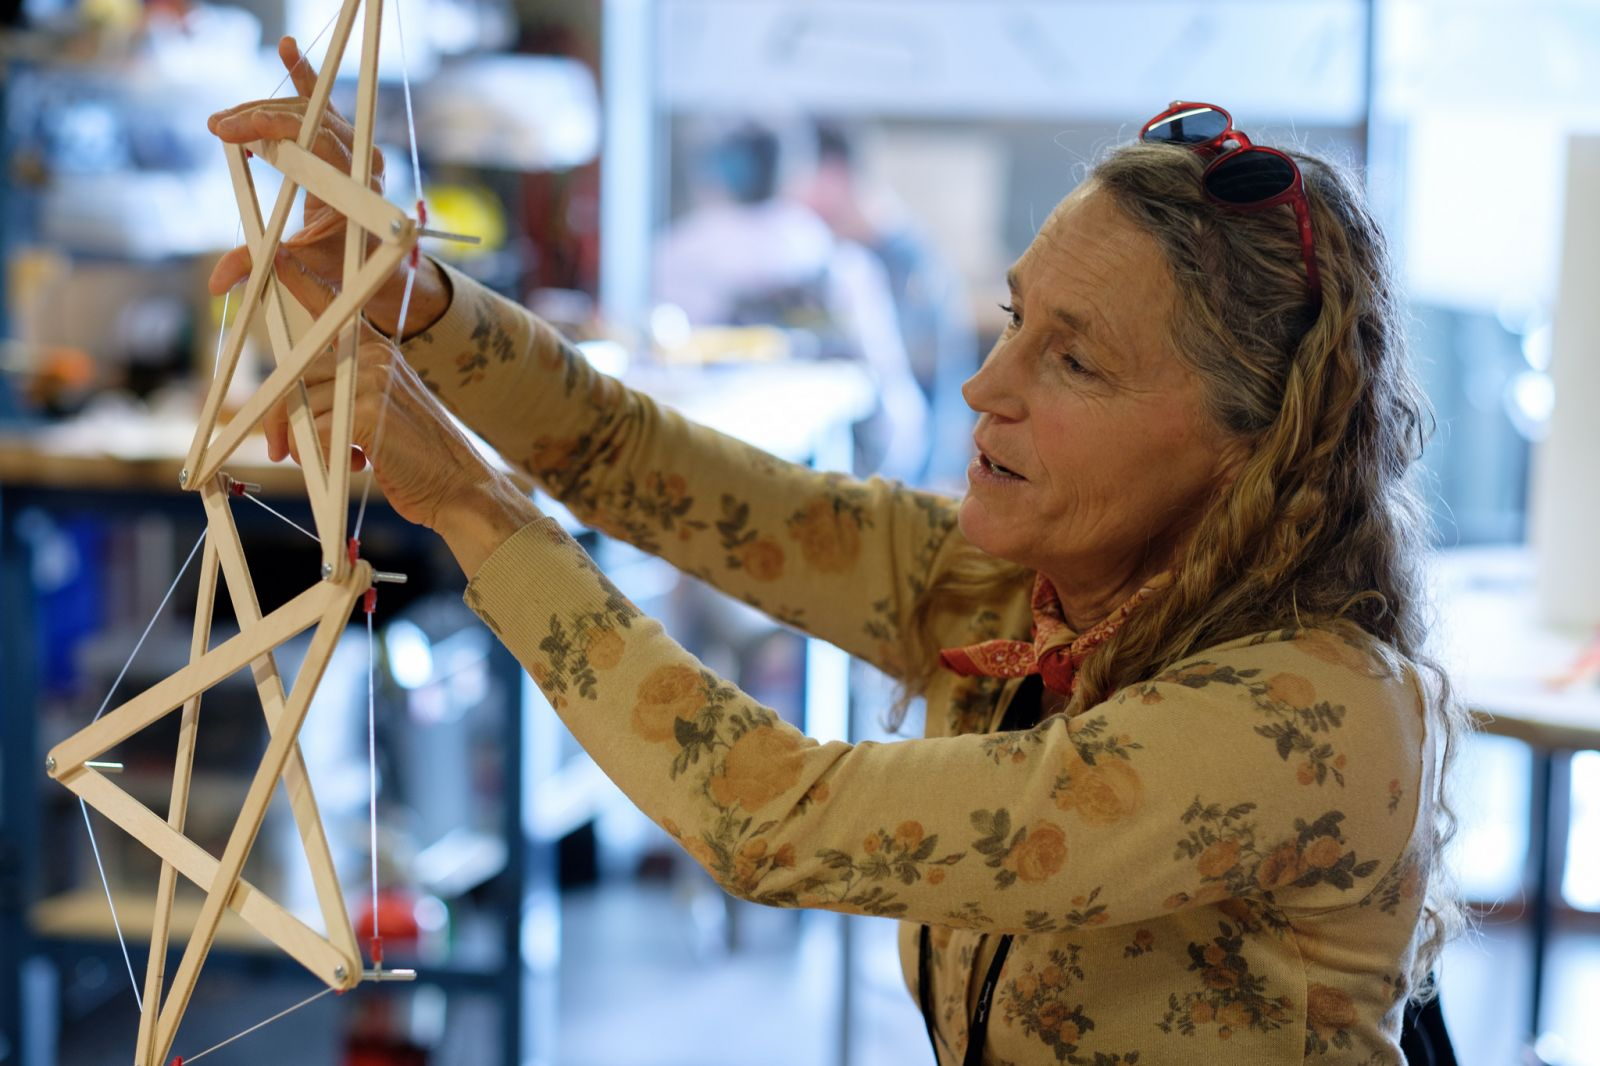 A woman explores a tensegrity model made of craft sticks and rubber bands